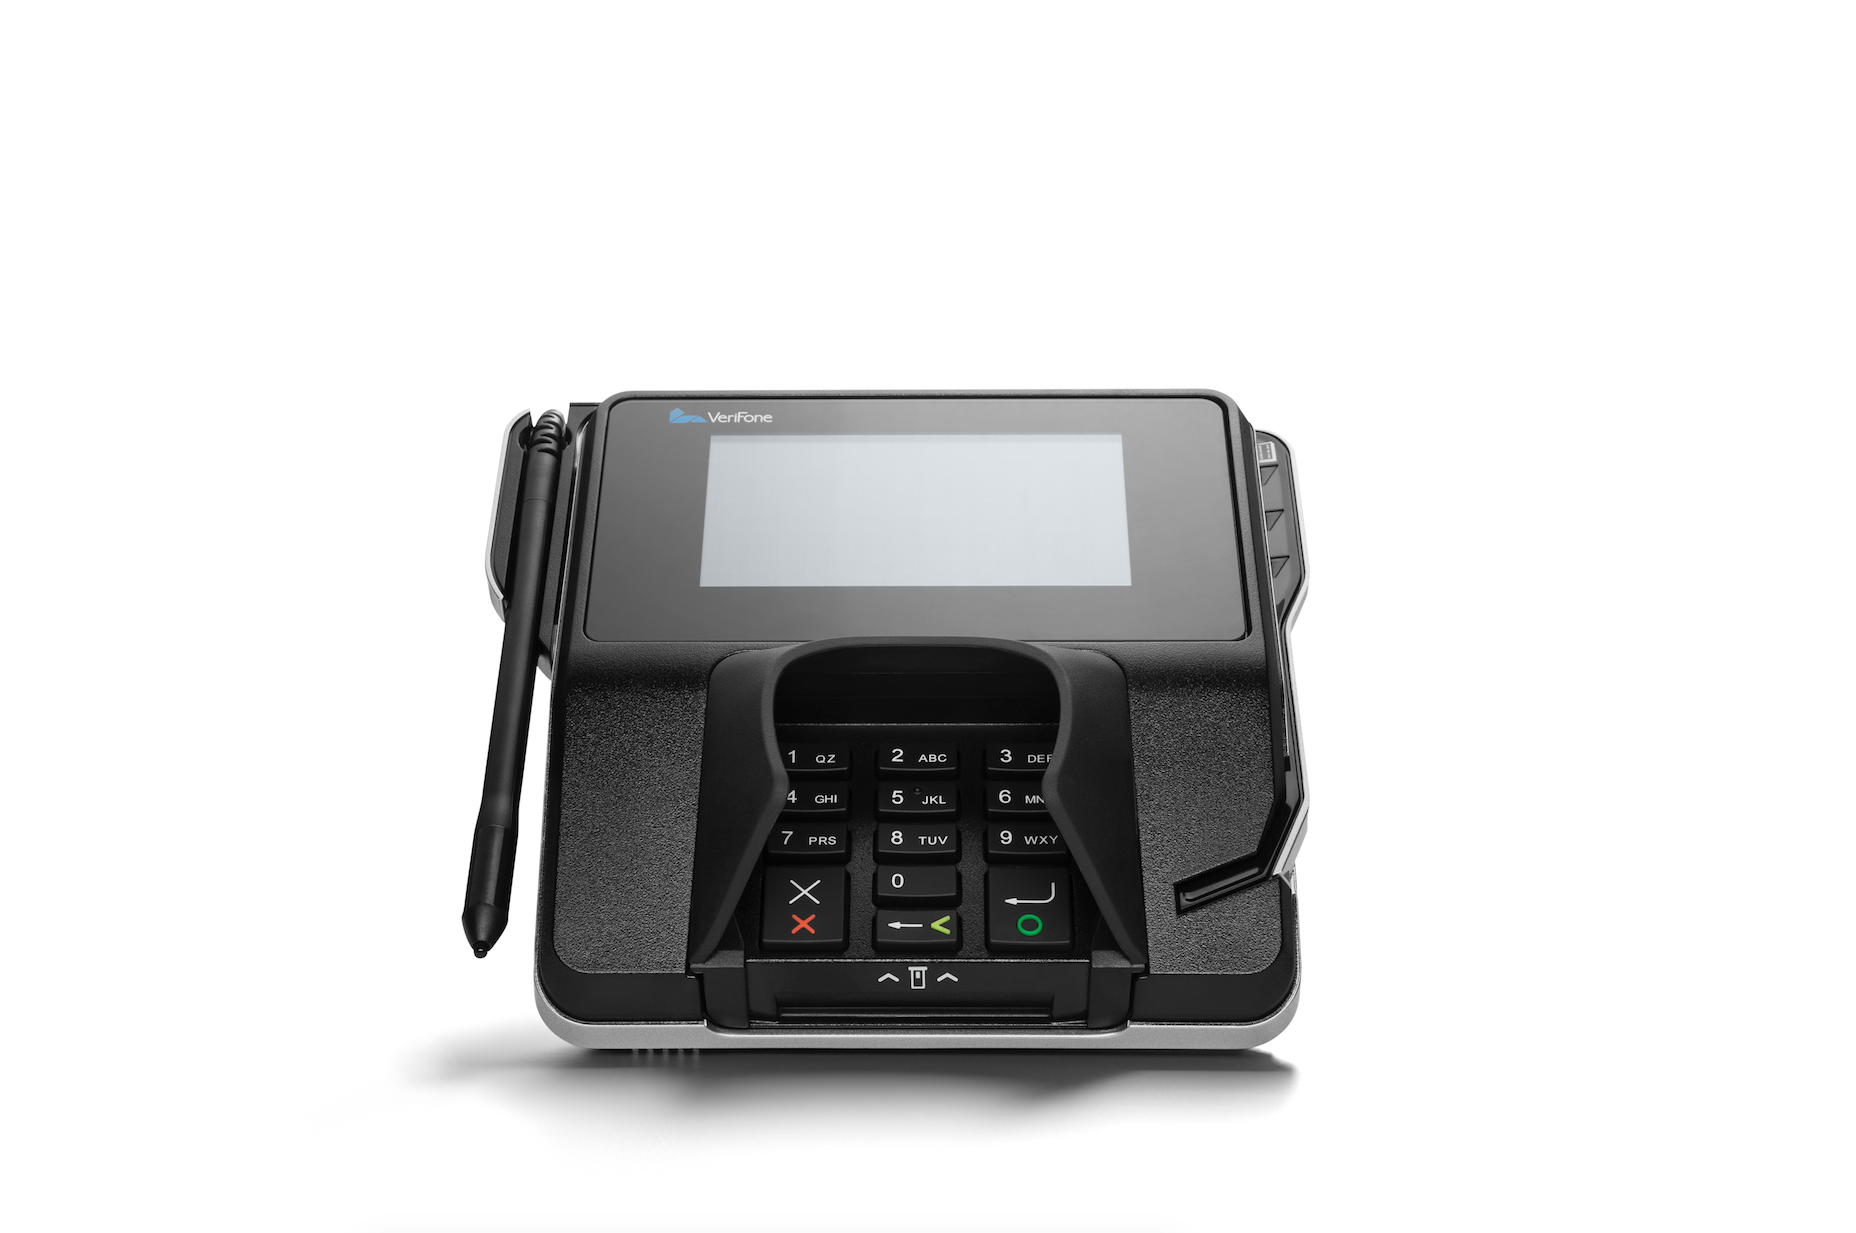 Verifone_MX-915.png